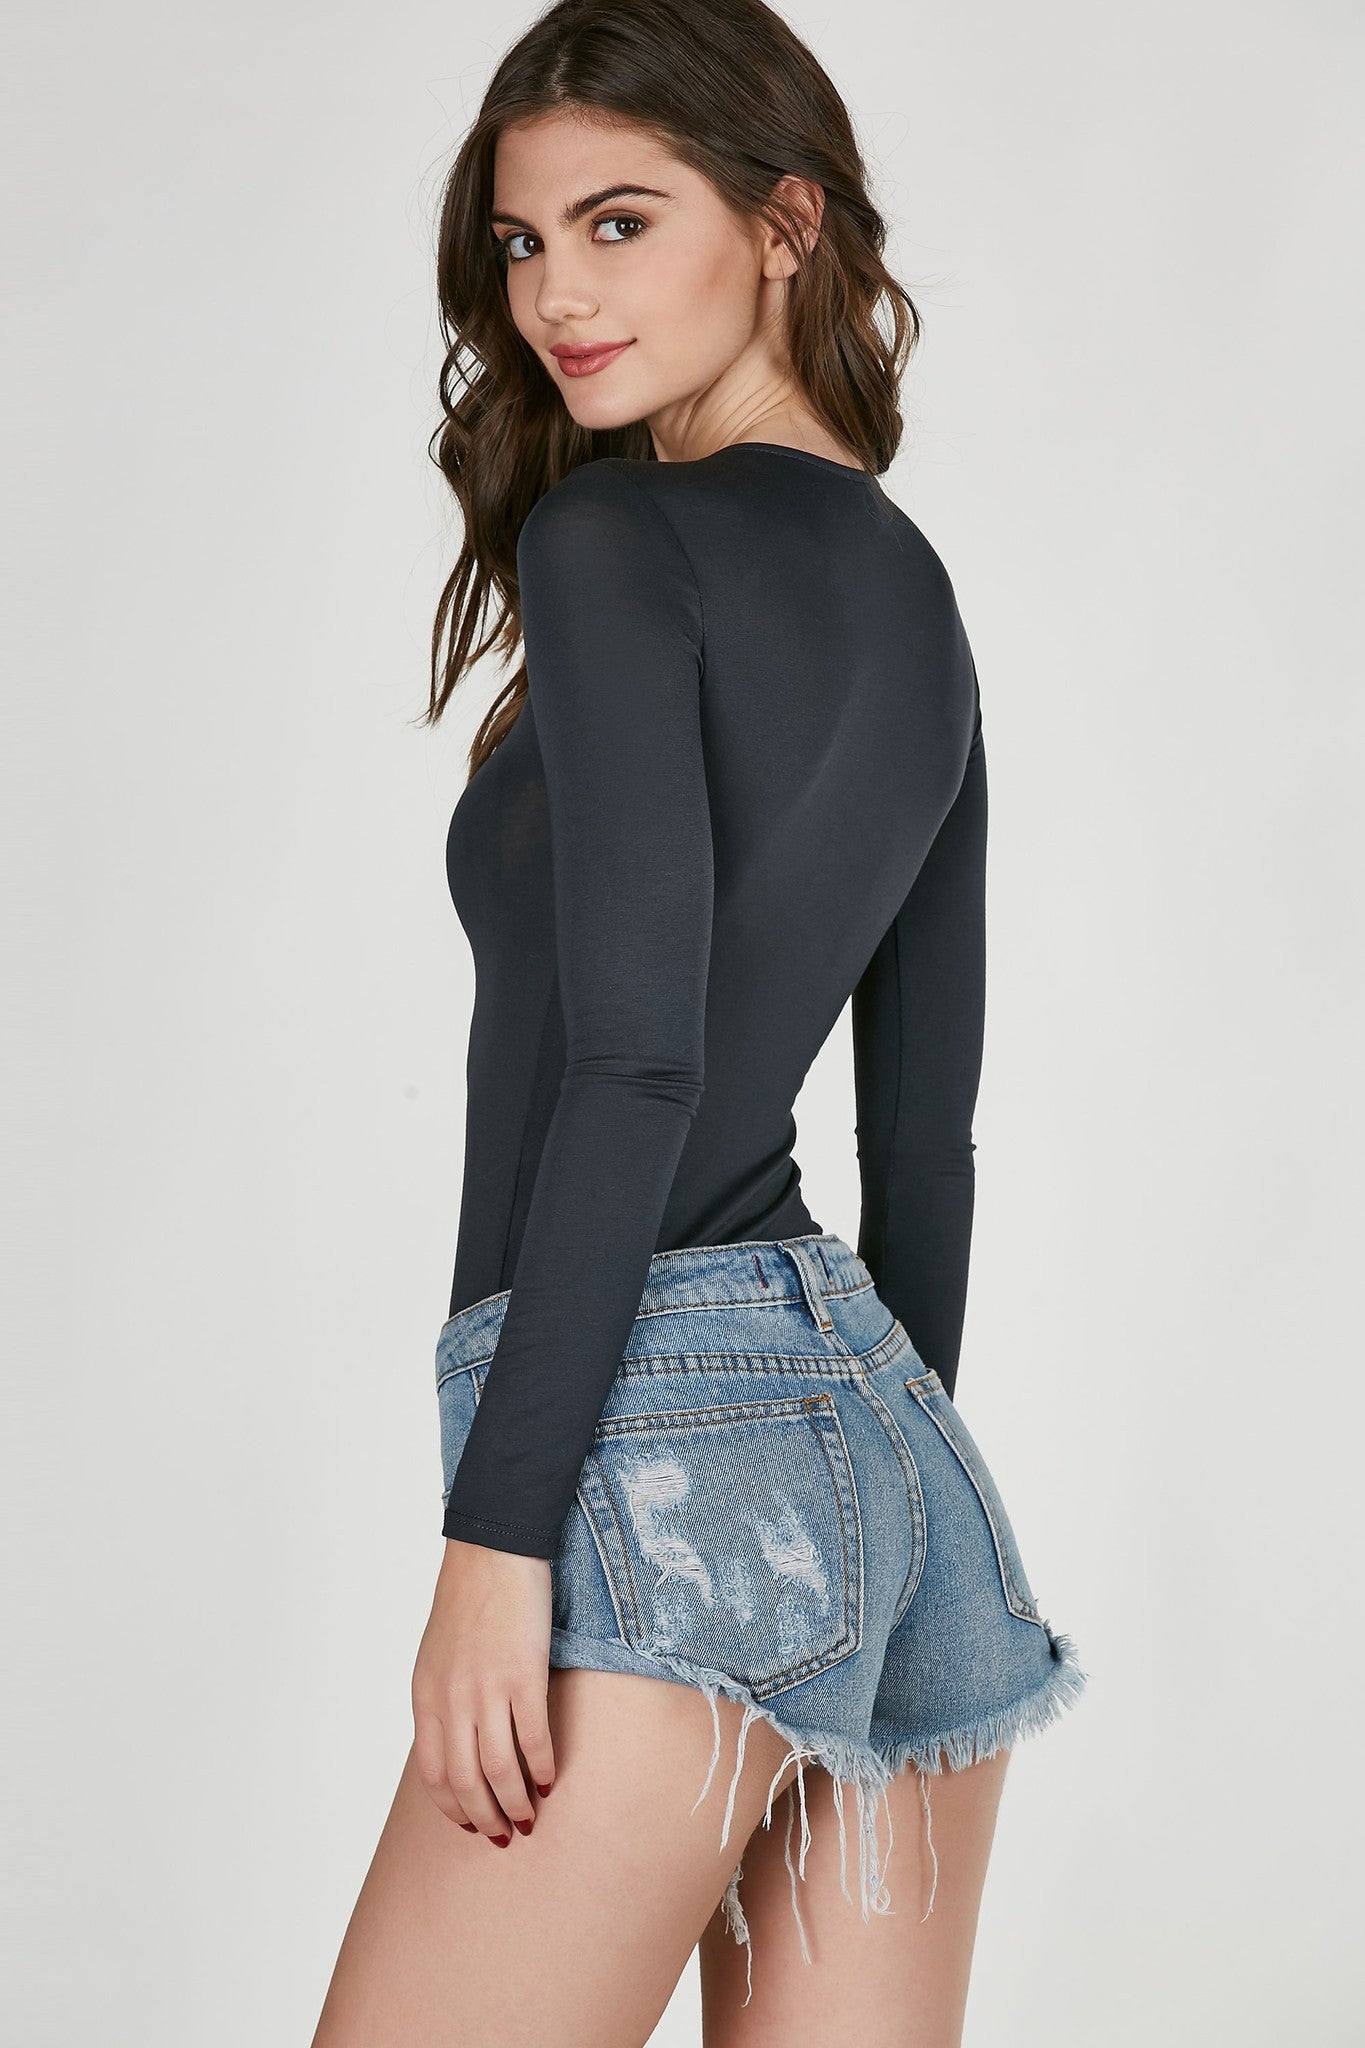 High neck long sleeve bodysuit with trendy lace up design at top. Slinky material with comfortable stretchy fit. Cheeky cut with snap button closure.